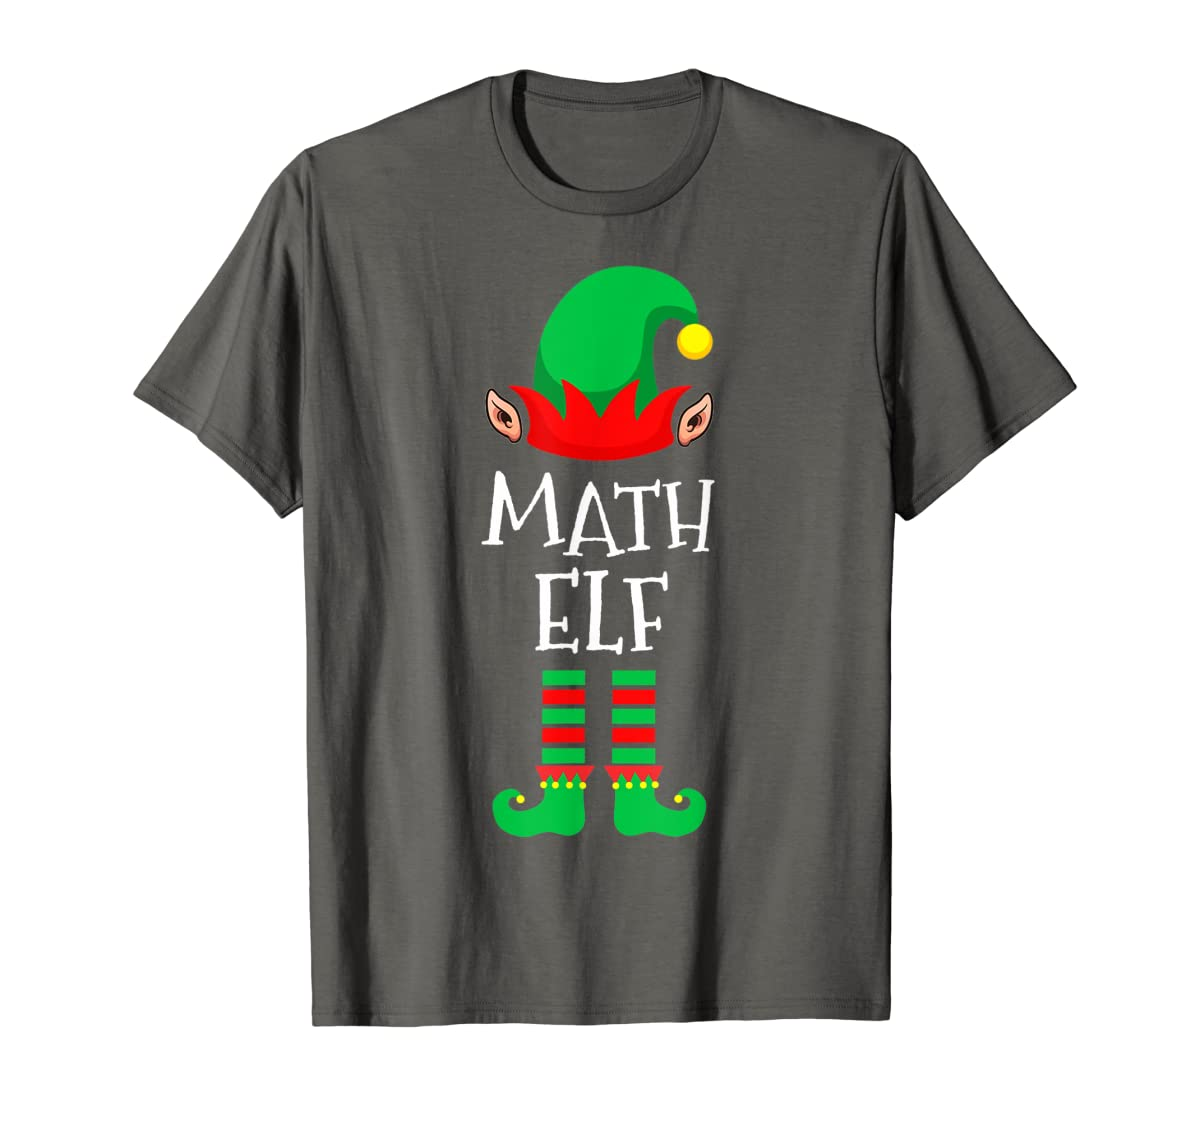 Math Elf - Funny School Teacher Christmas T-Shirt-Men's T-Shirt-Dark Heather